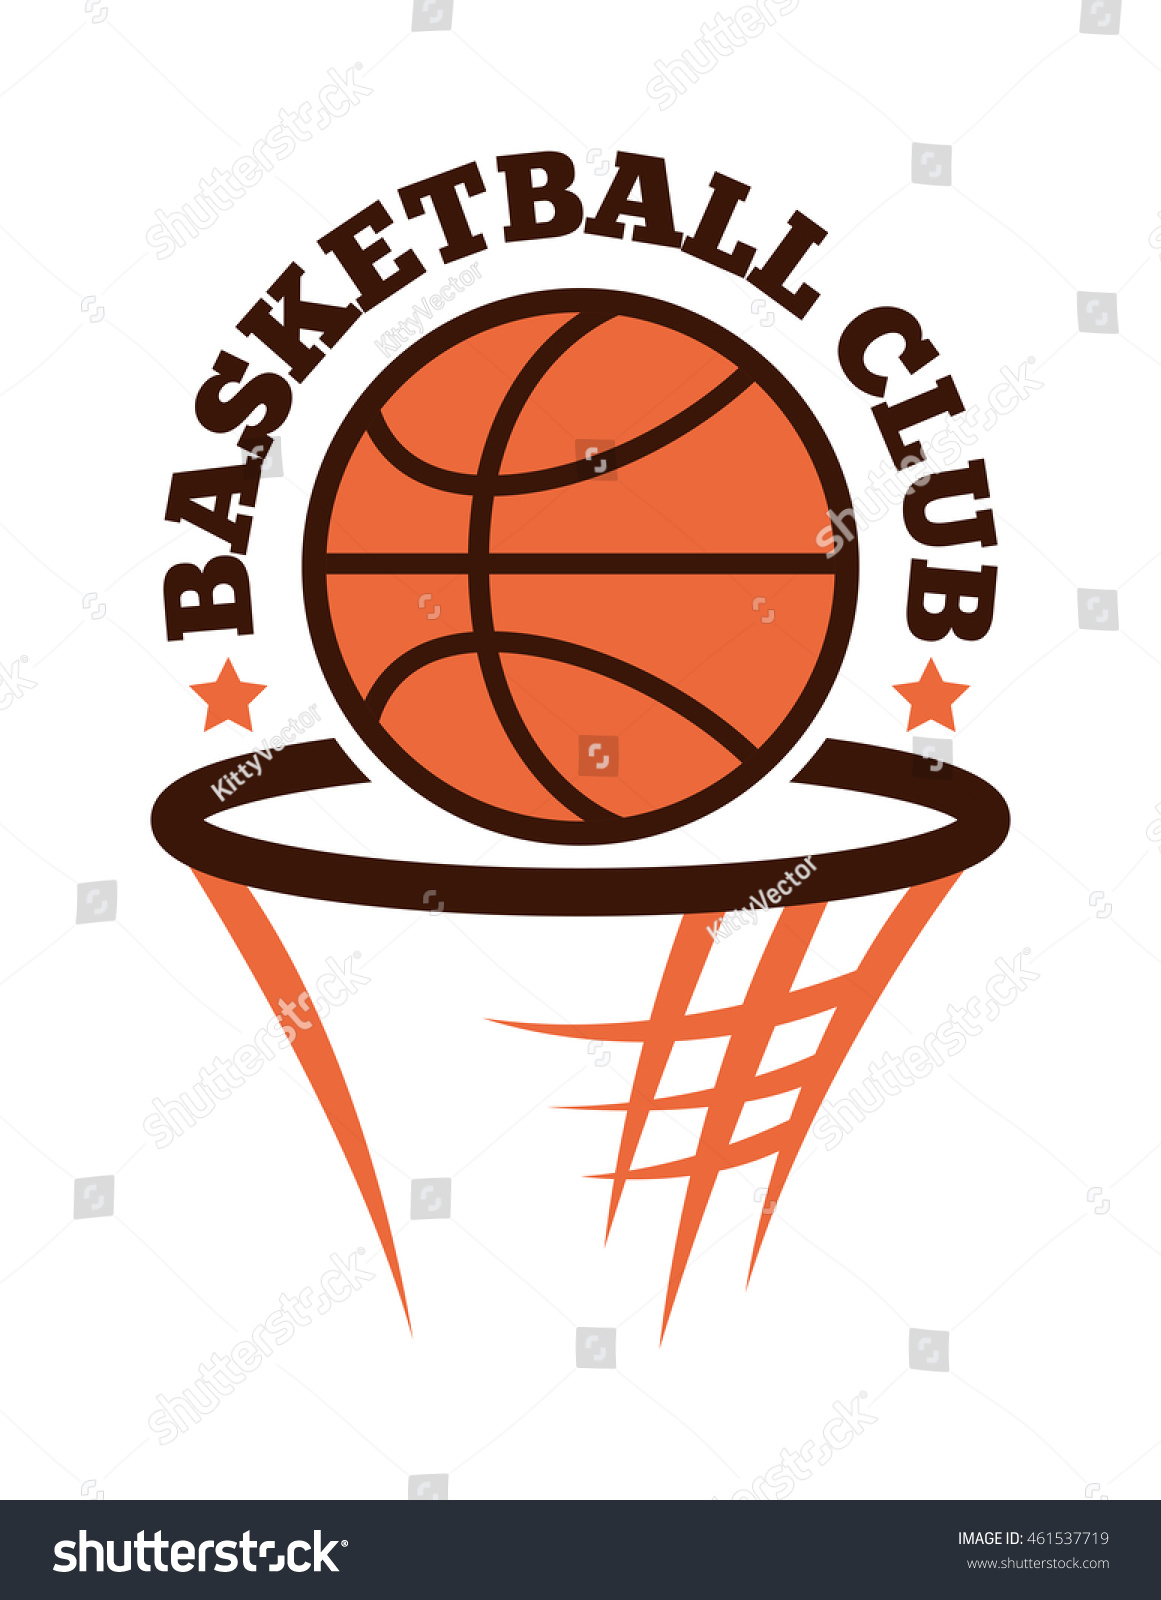 Template logo basketball sport team sport stock vector 461537719 template logo for basketball sport team with sport sign and symbols biocorpaavc Choice Image